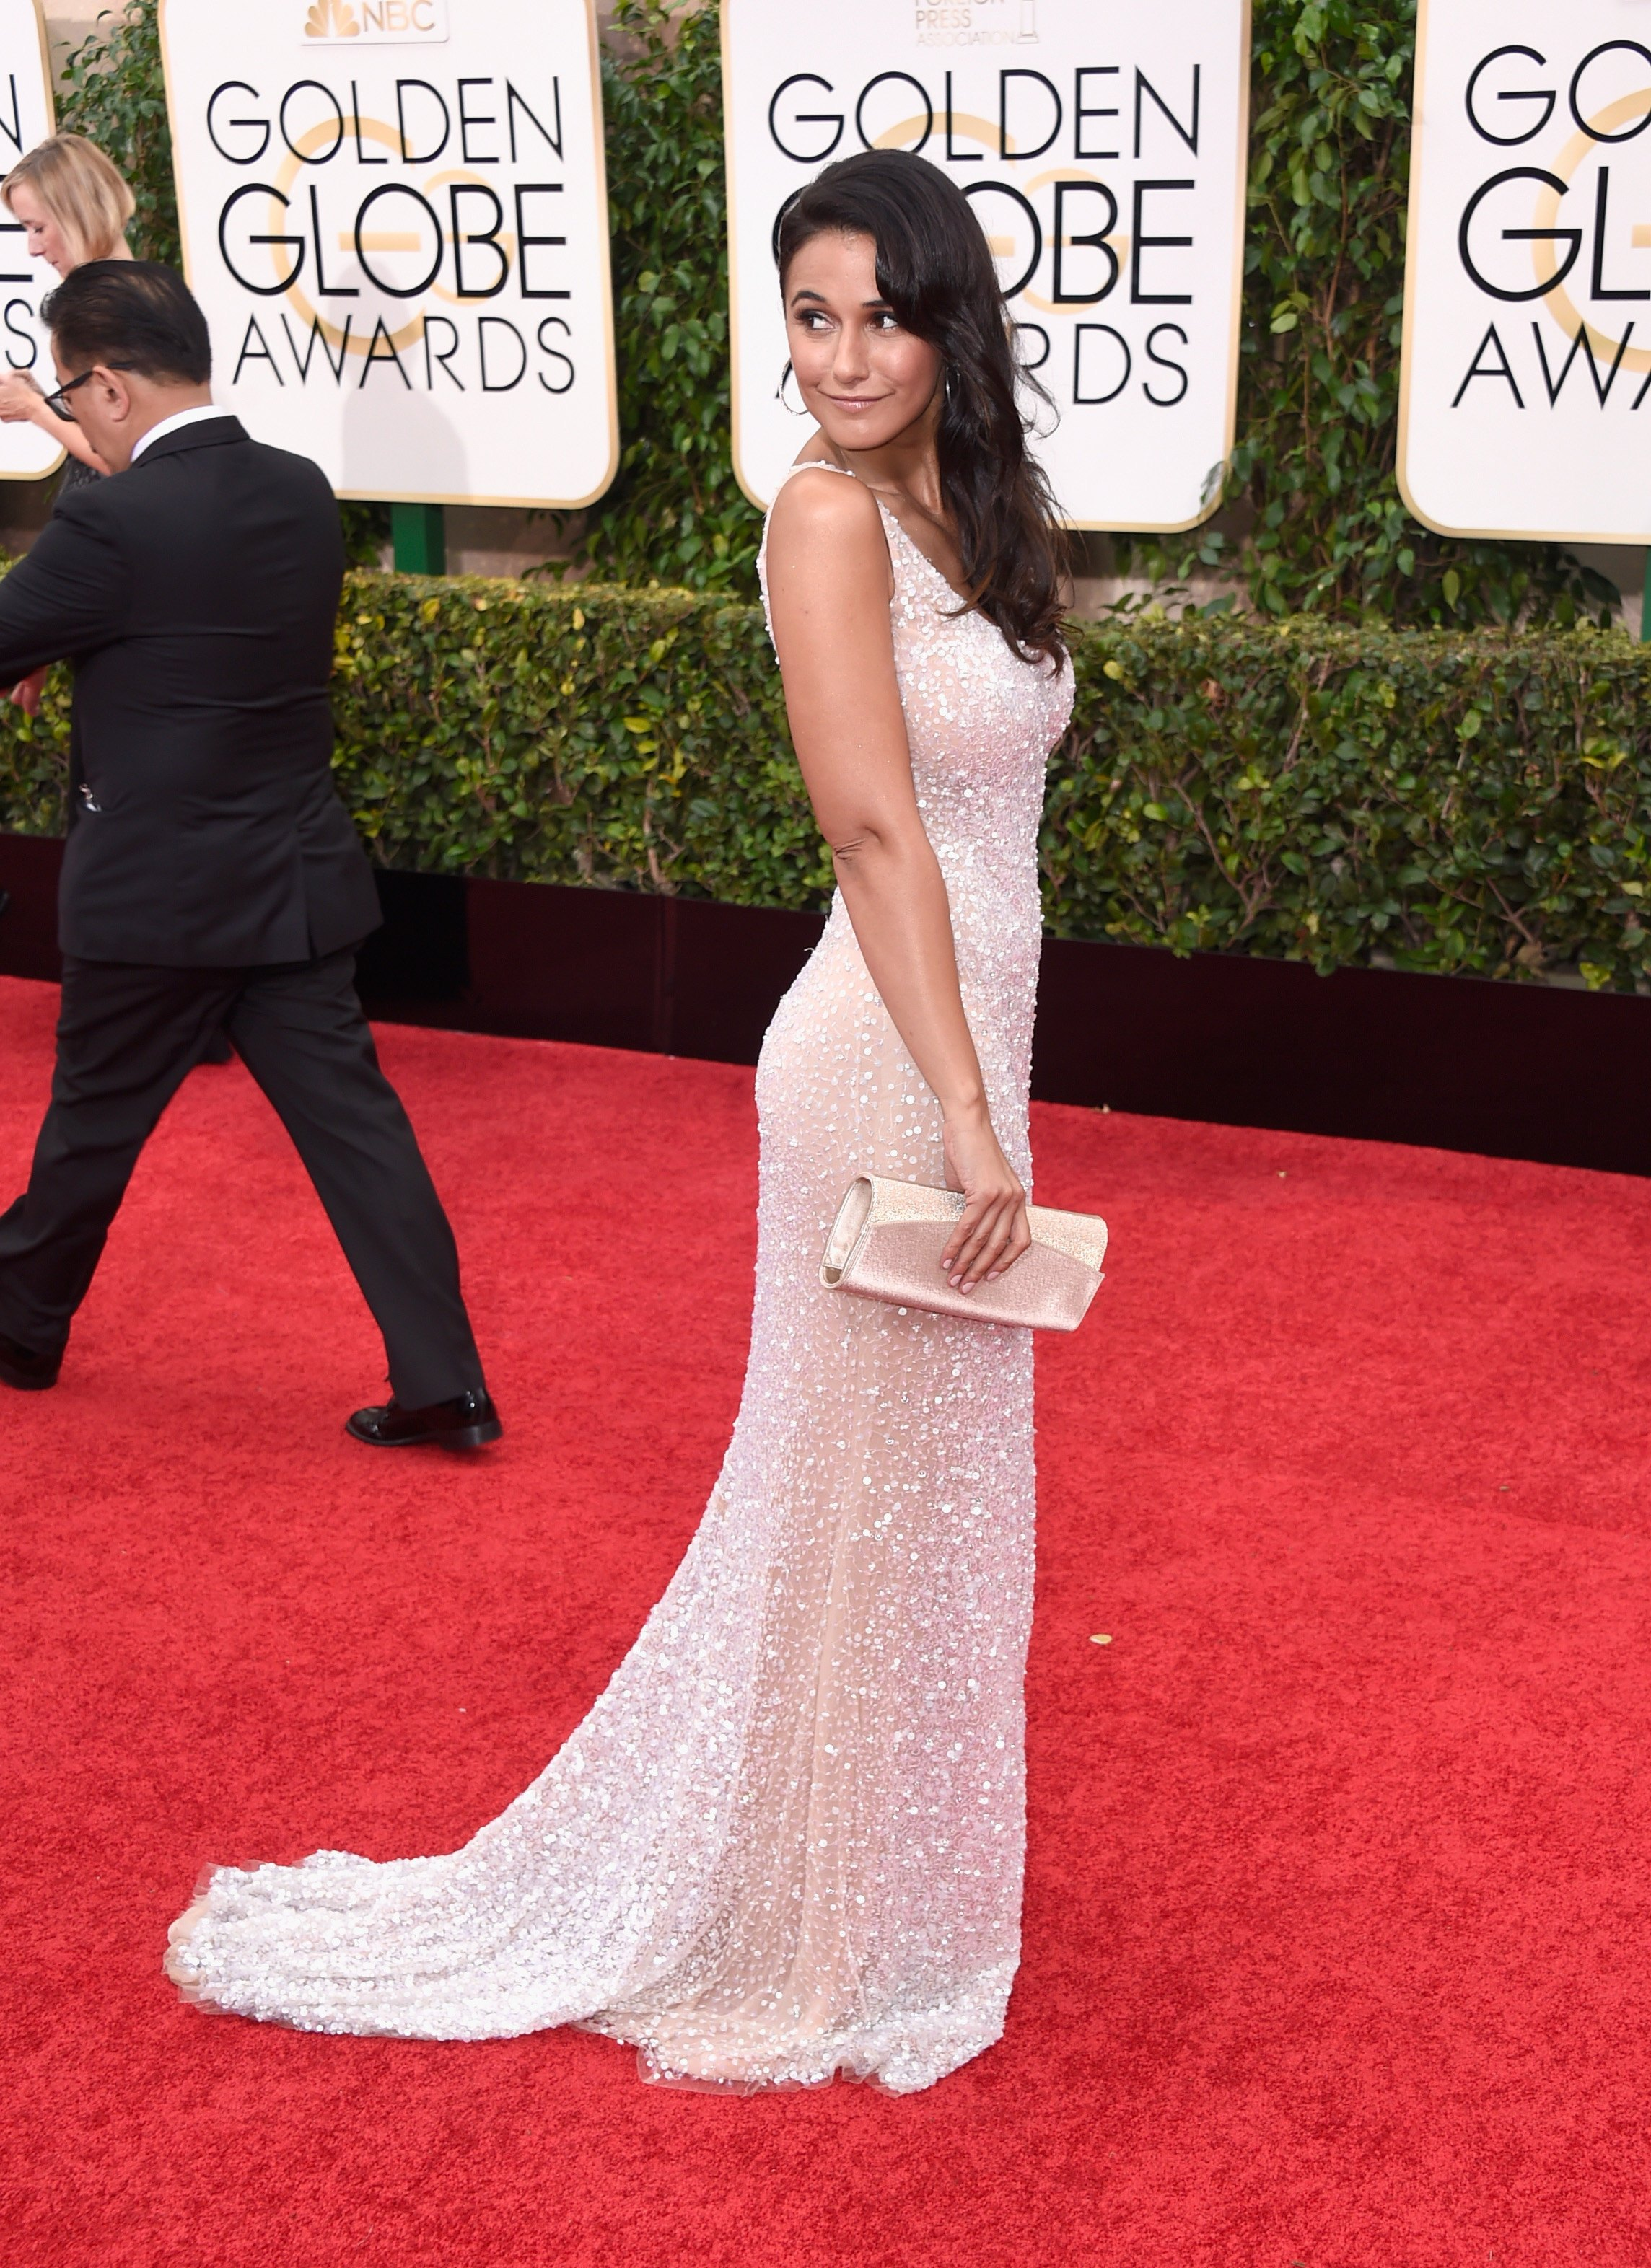 Emmanuelle Chriqui - Sexy Golden Globe Award Pictures - Sexy Actress Pictures | Hot Actress Pictures - ActressSnaps.com